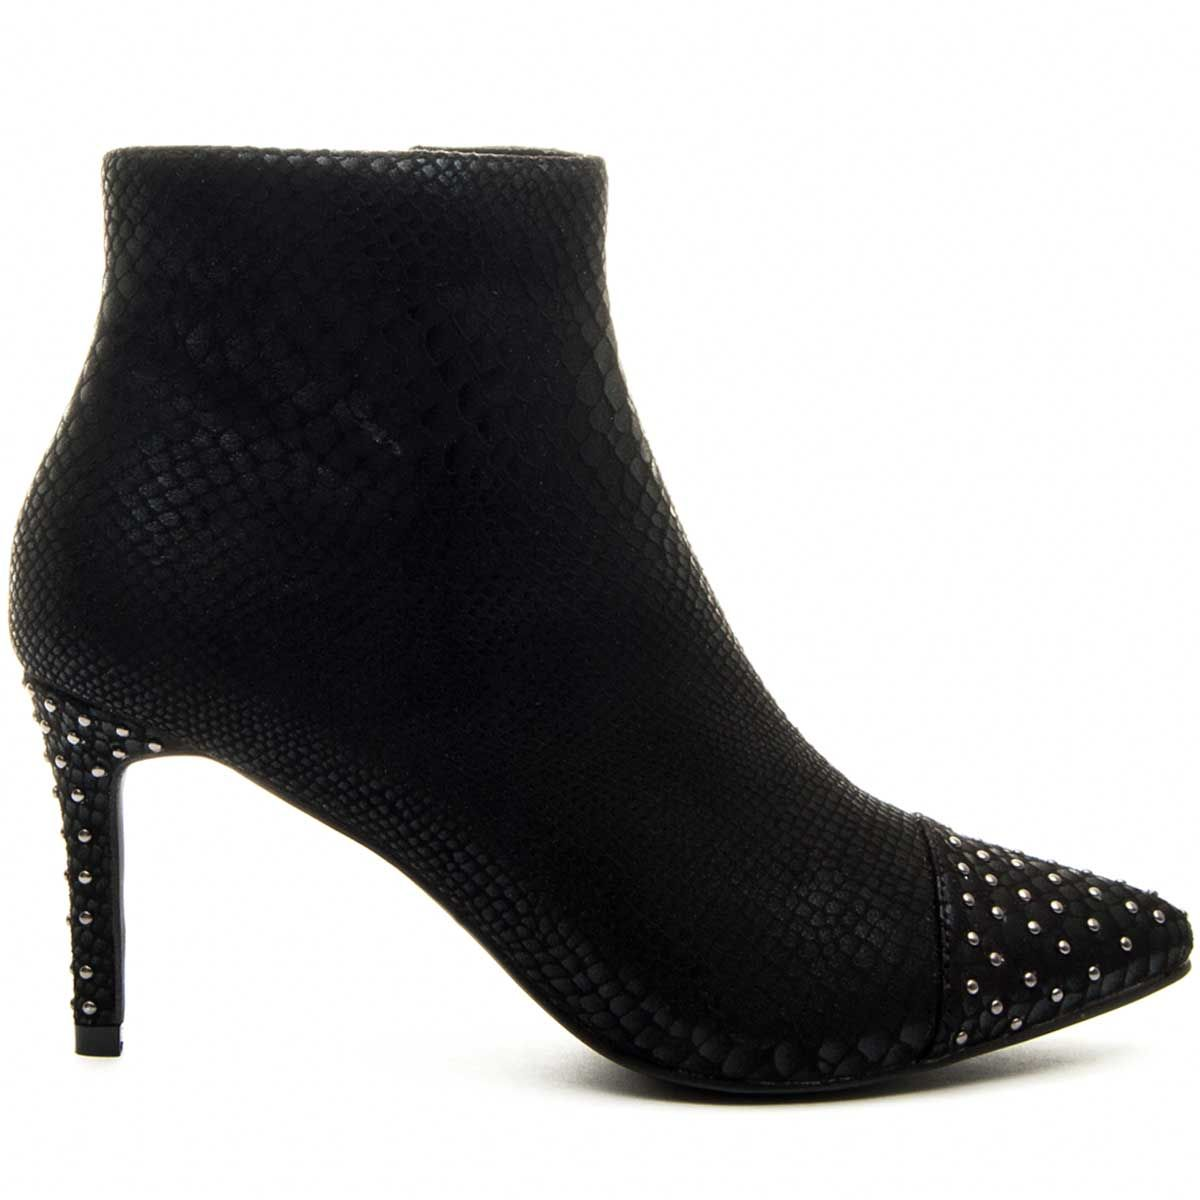 Montevita Pointy Heeled Ankle Boot in Black